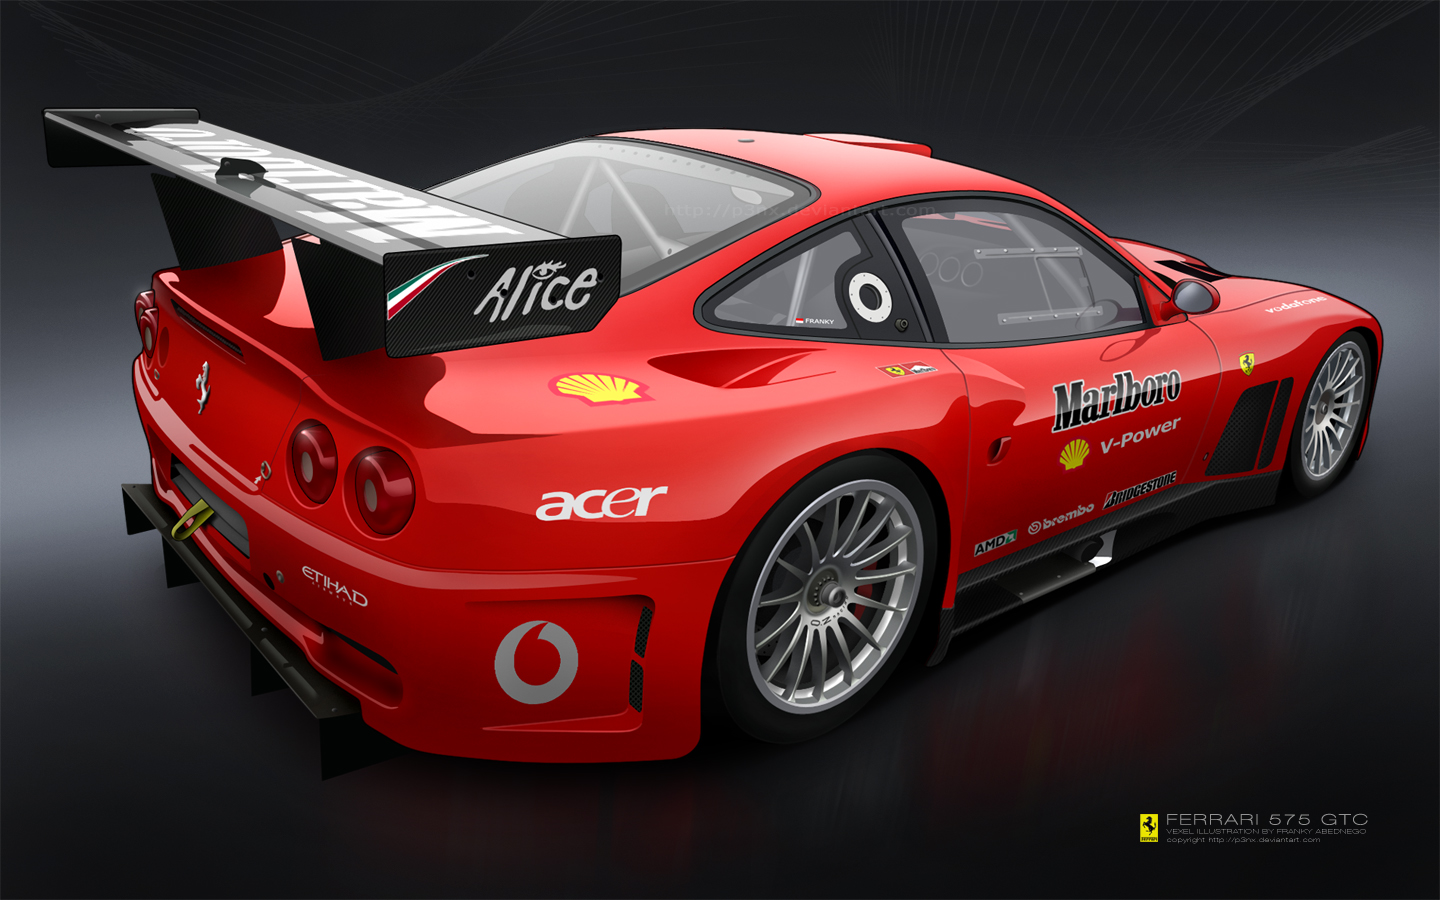 Ferrari 575 GTC Photos World Cars Free Download Image Of Wallpaper